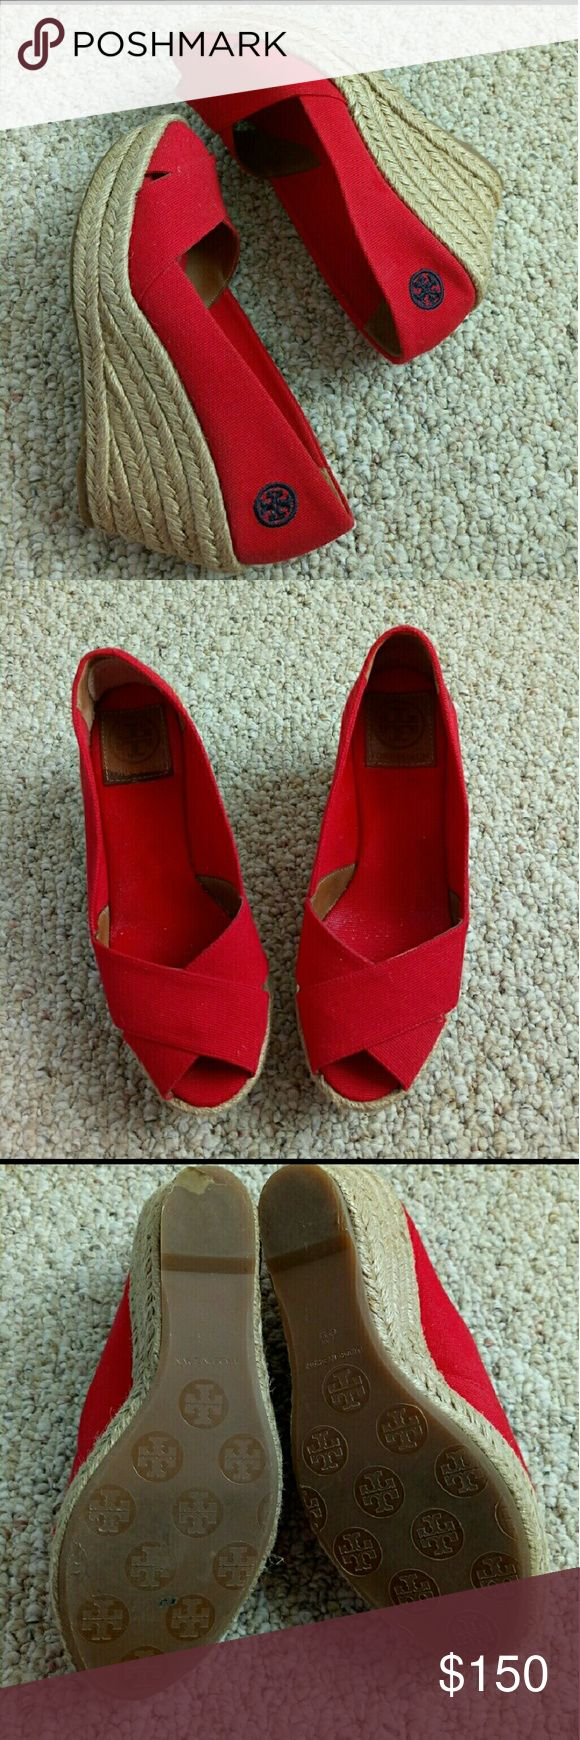 Red Troy Burch Wedge Red Tony Burch Wedge Shoes Size 6 Made in Spain 3 inches heels Only wore 2 times, show a little wore on the heels Tory Burch Shoes Wedges